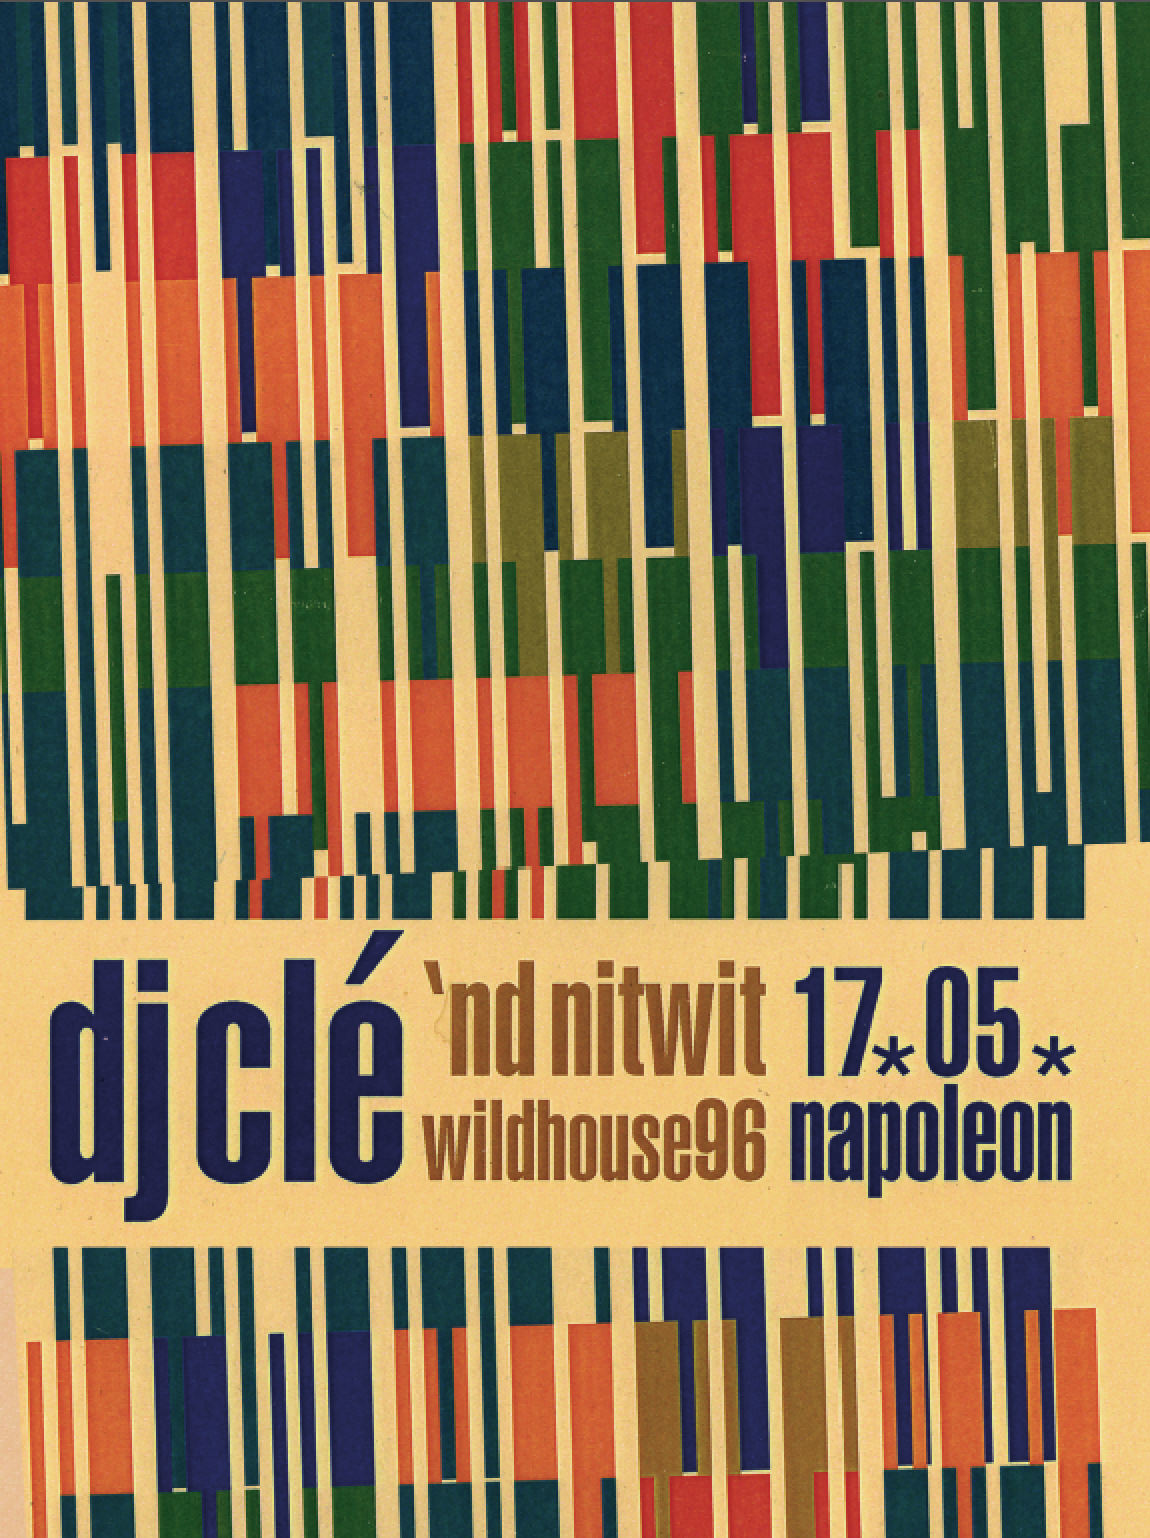 djcle